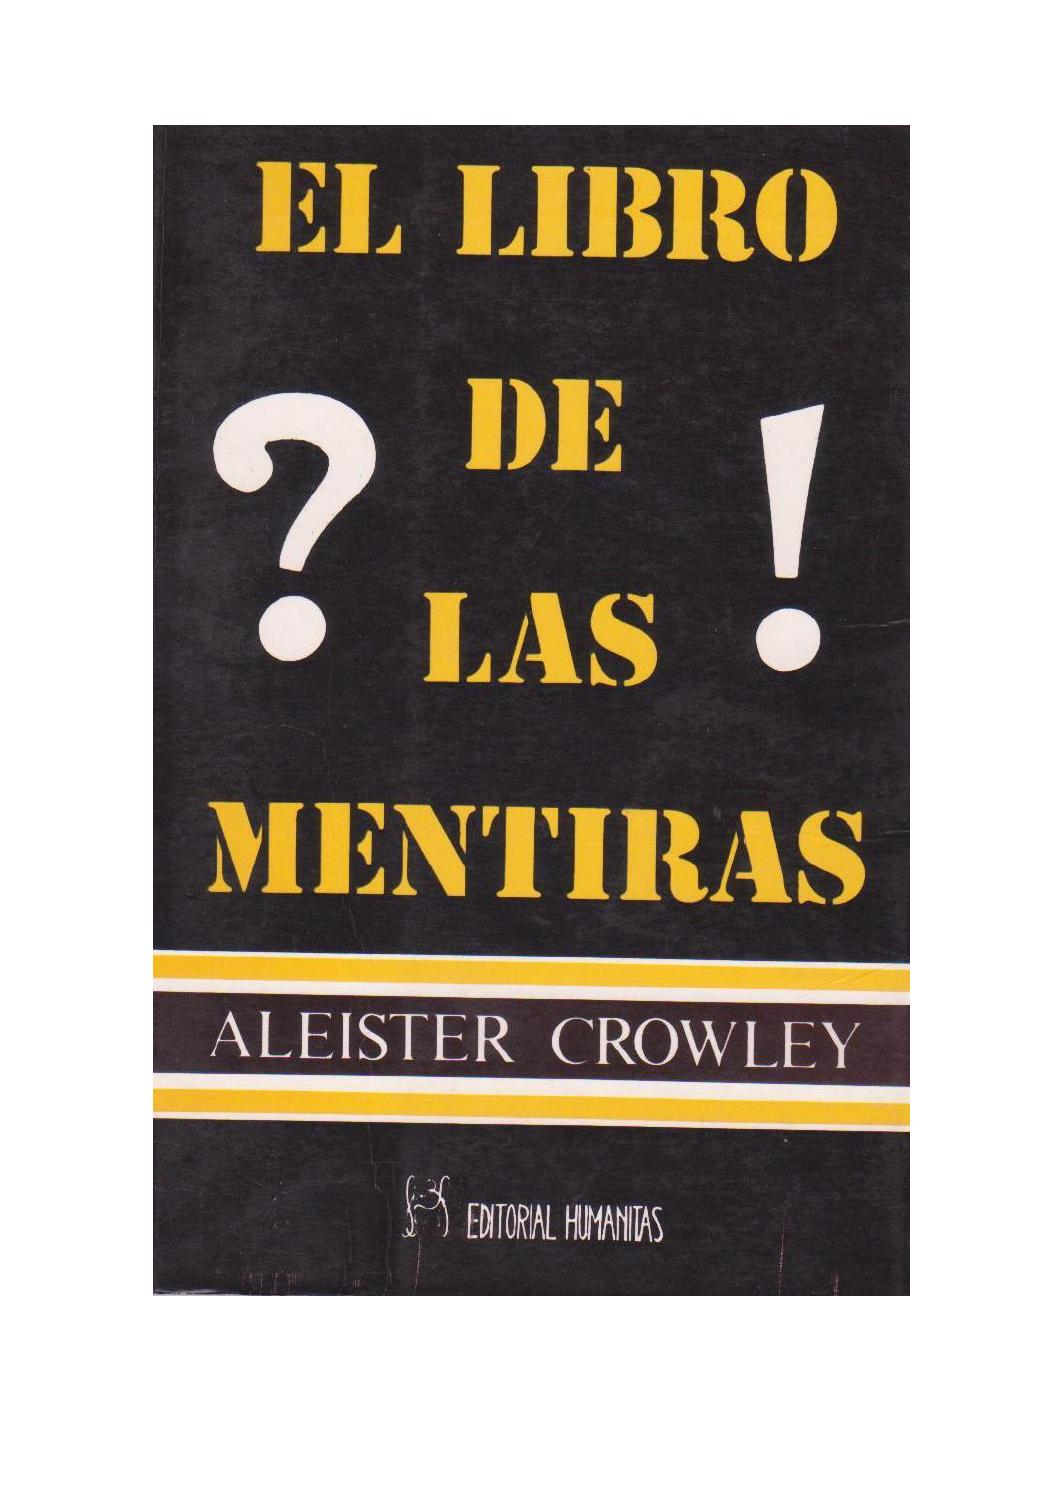 777 aleister crowley pdf portugues